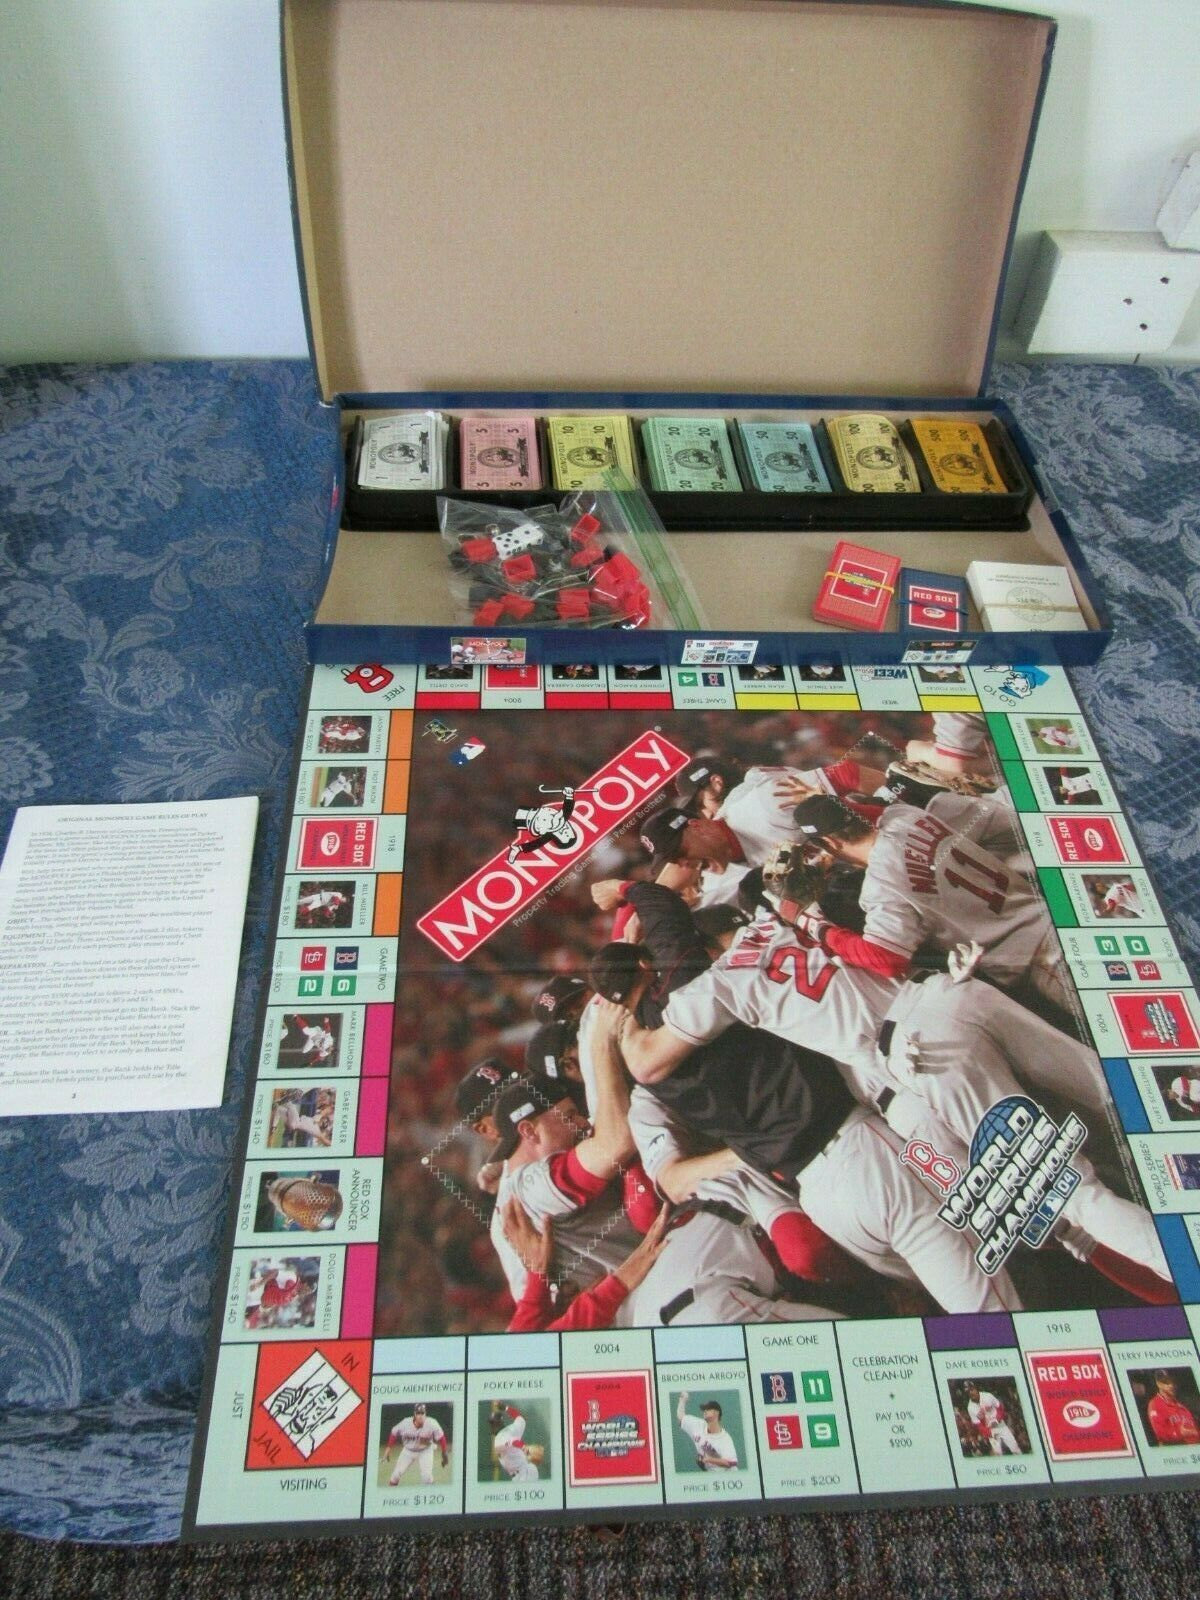 Primary image for Monopoly Red Sox Edition World Series Champions 1918 2004